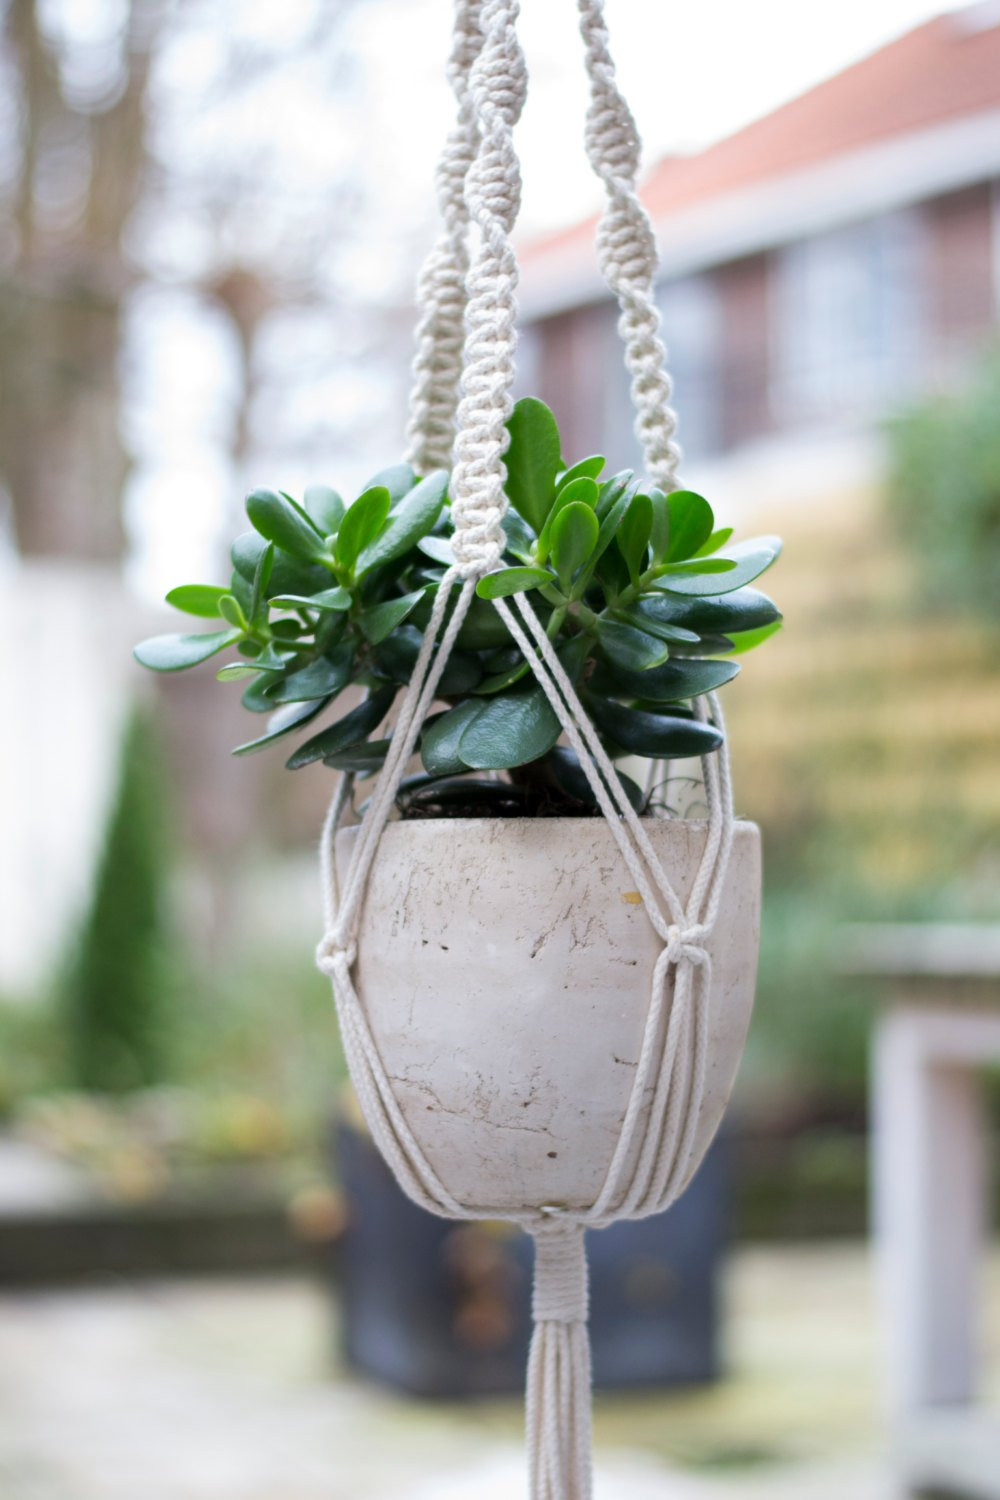 Macrame Plant Holder Unique Macrame Plant Hanger Plant Holder Hanging Planter Home Of Luxury 45 Images Macrame Plant Holder